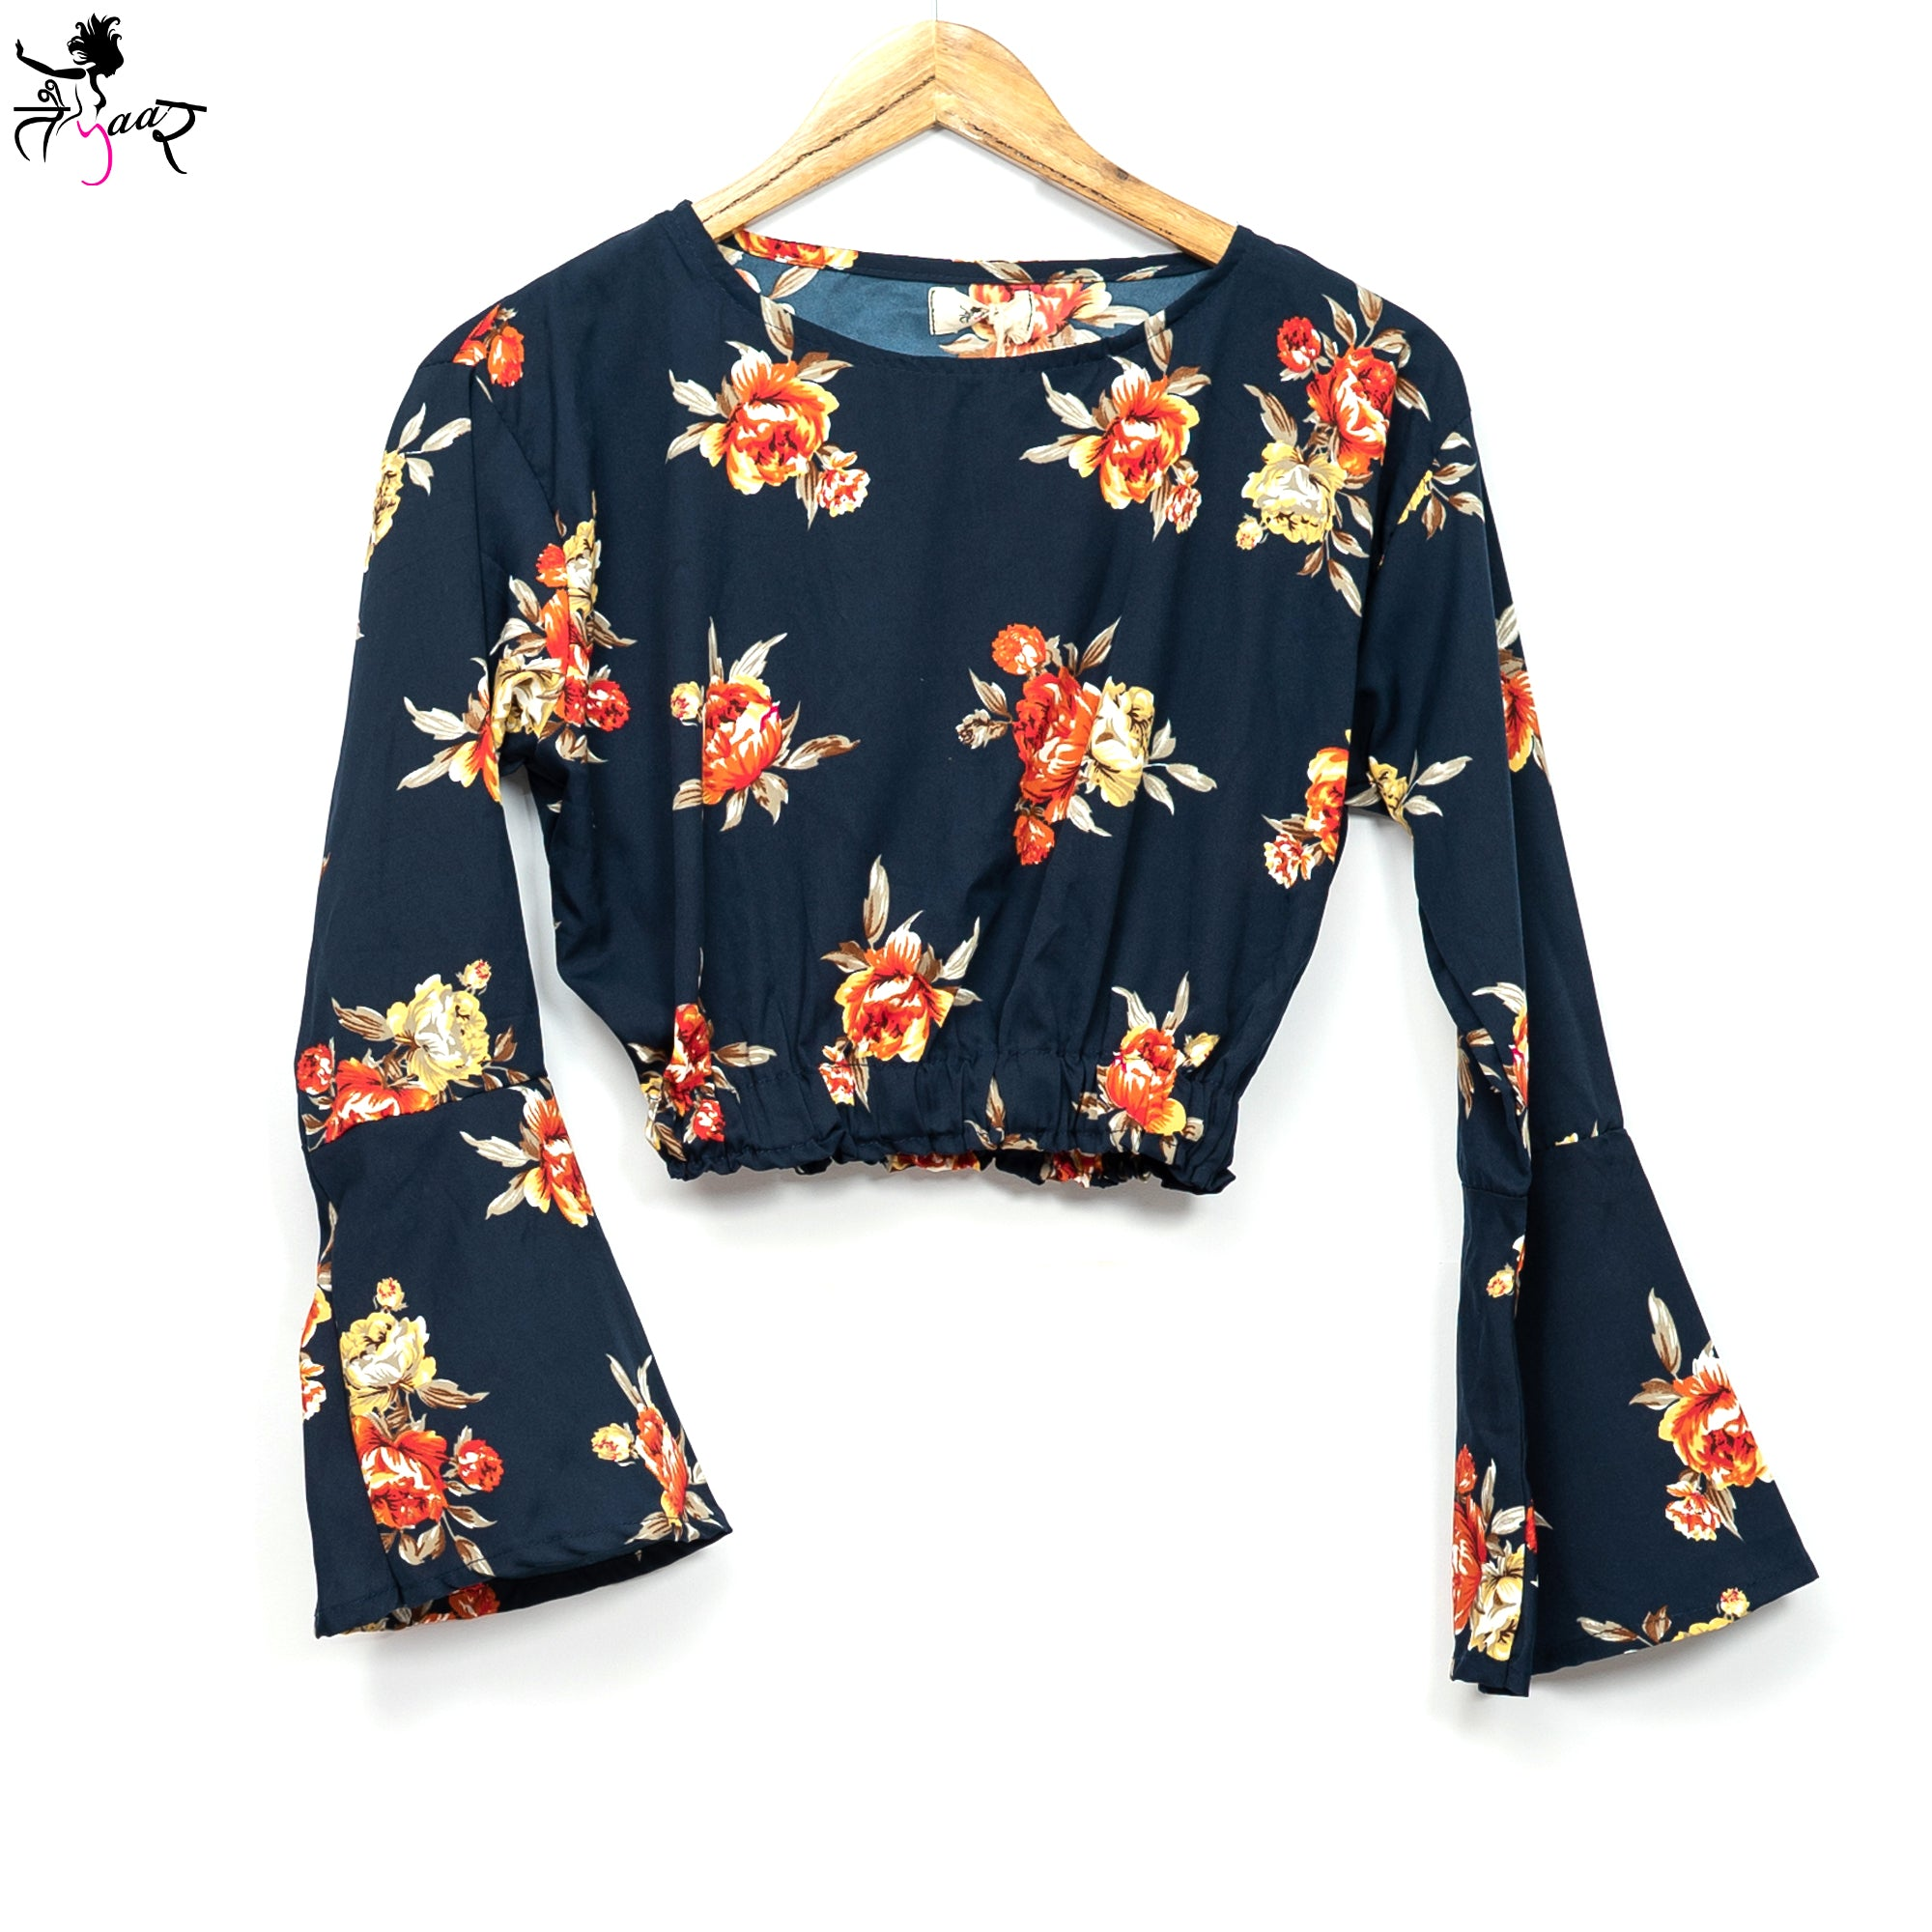 Floral Bell Sleeves Printed Crop Top